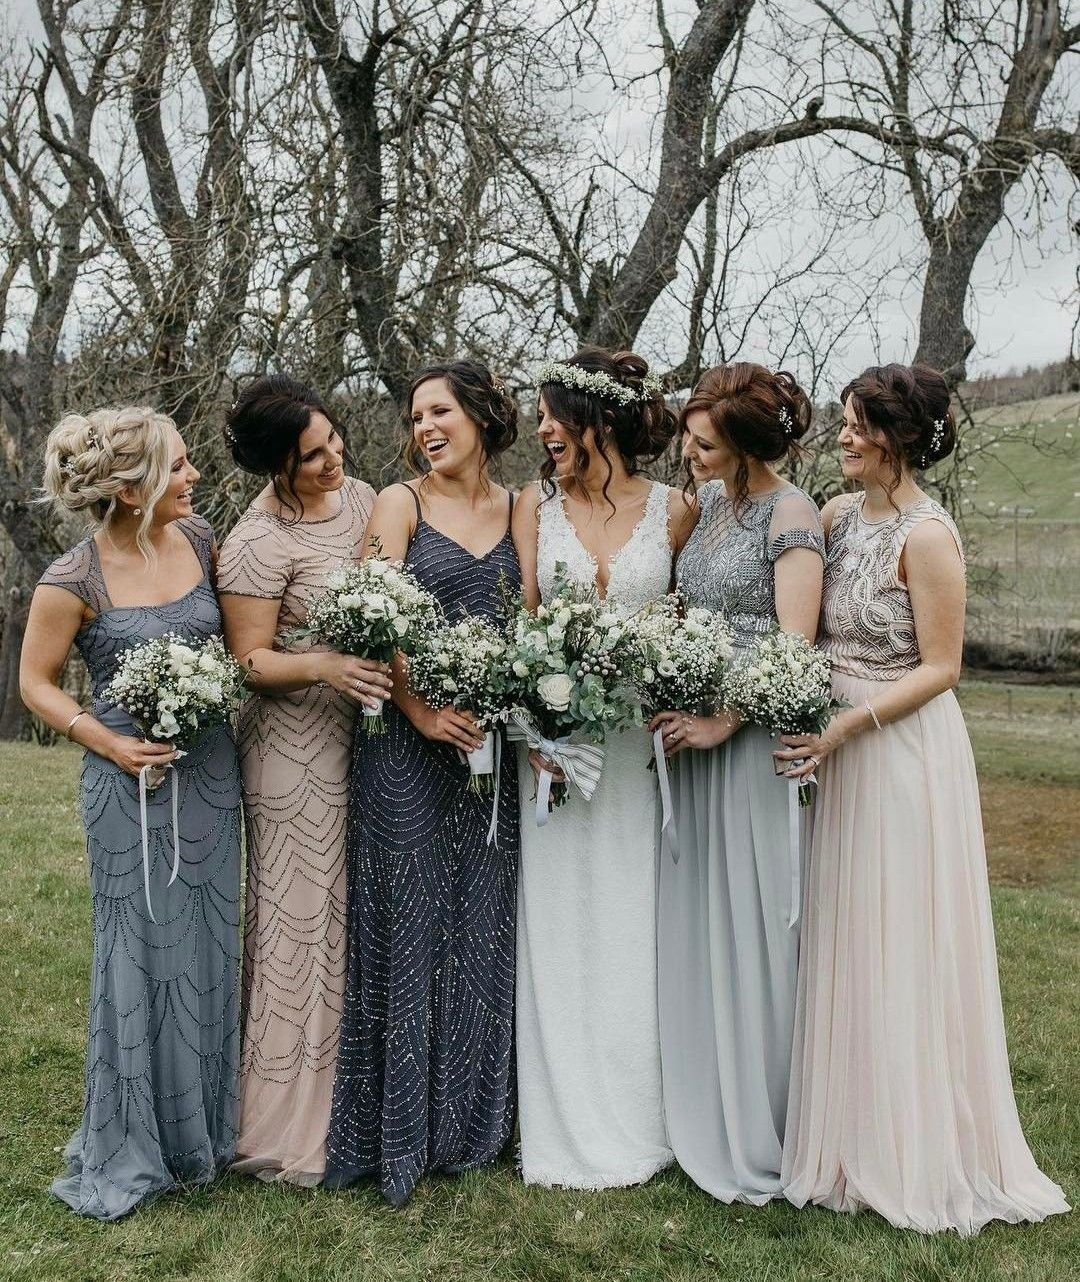 Pin On Bridesmaid Dresses Bouquets